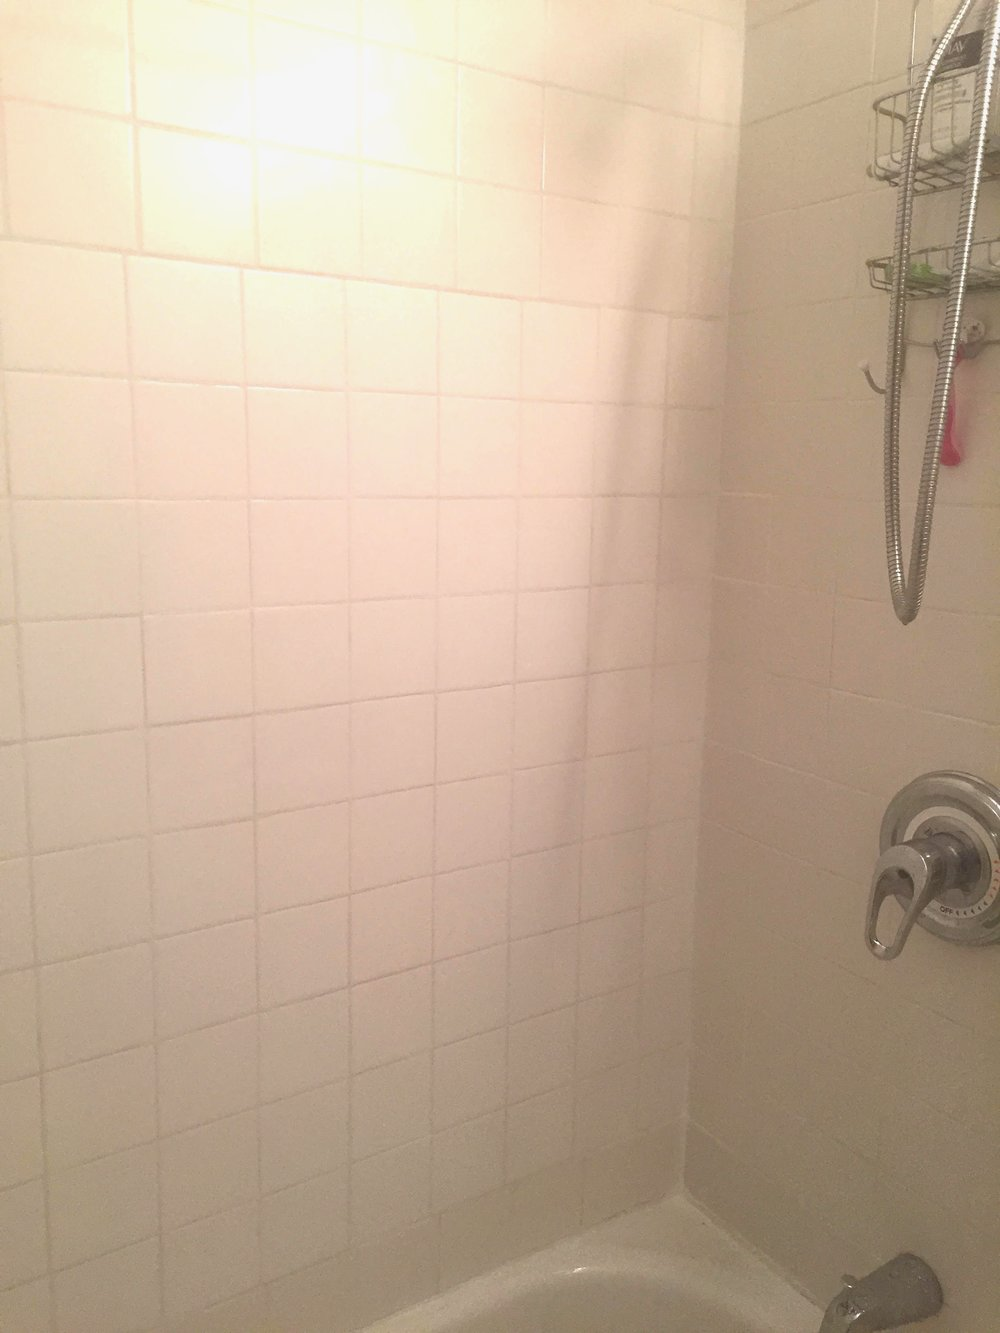 Anna Osgoodby Life + Design :: Apartment DIY Project Bathroom Edition -- How to Re-Grout and Re-Caulk Your Shower for Under $30